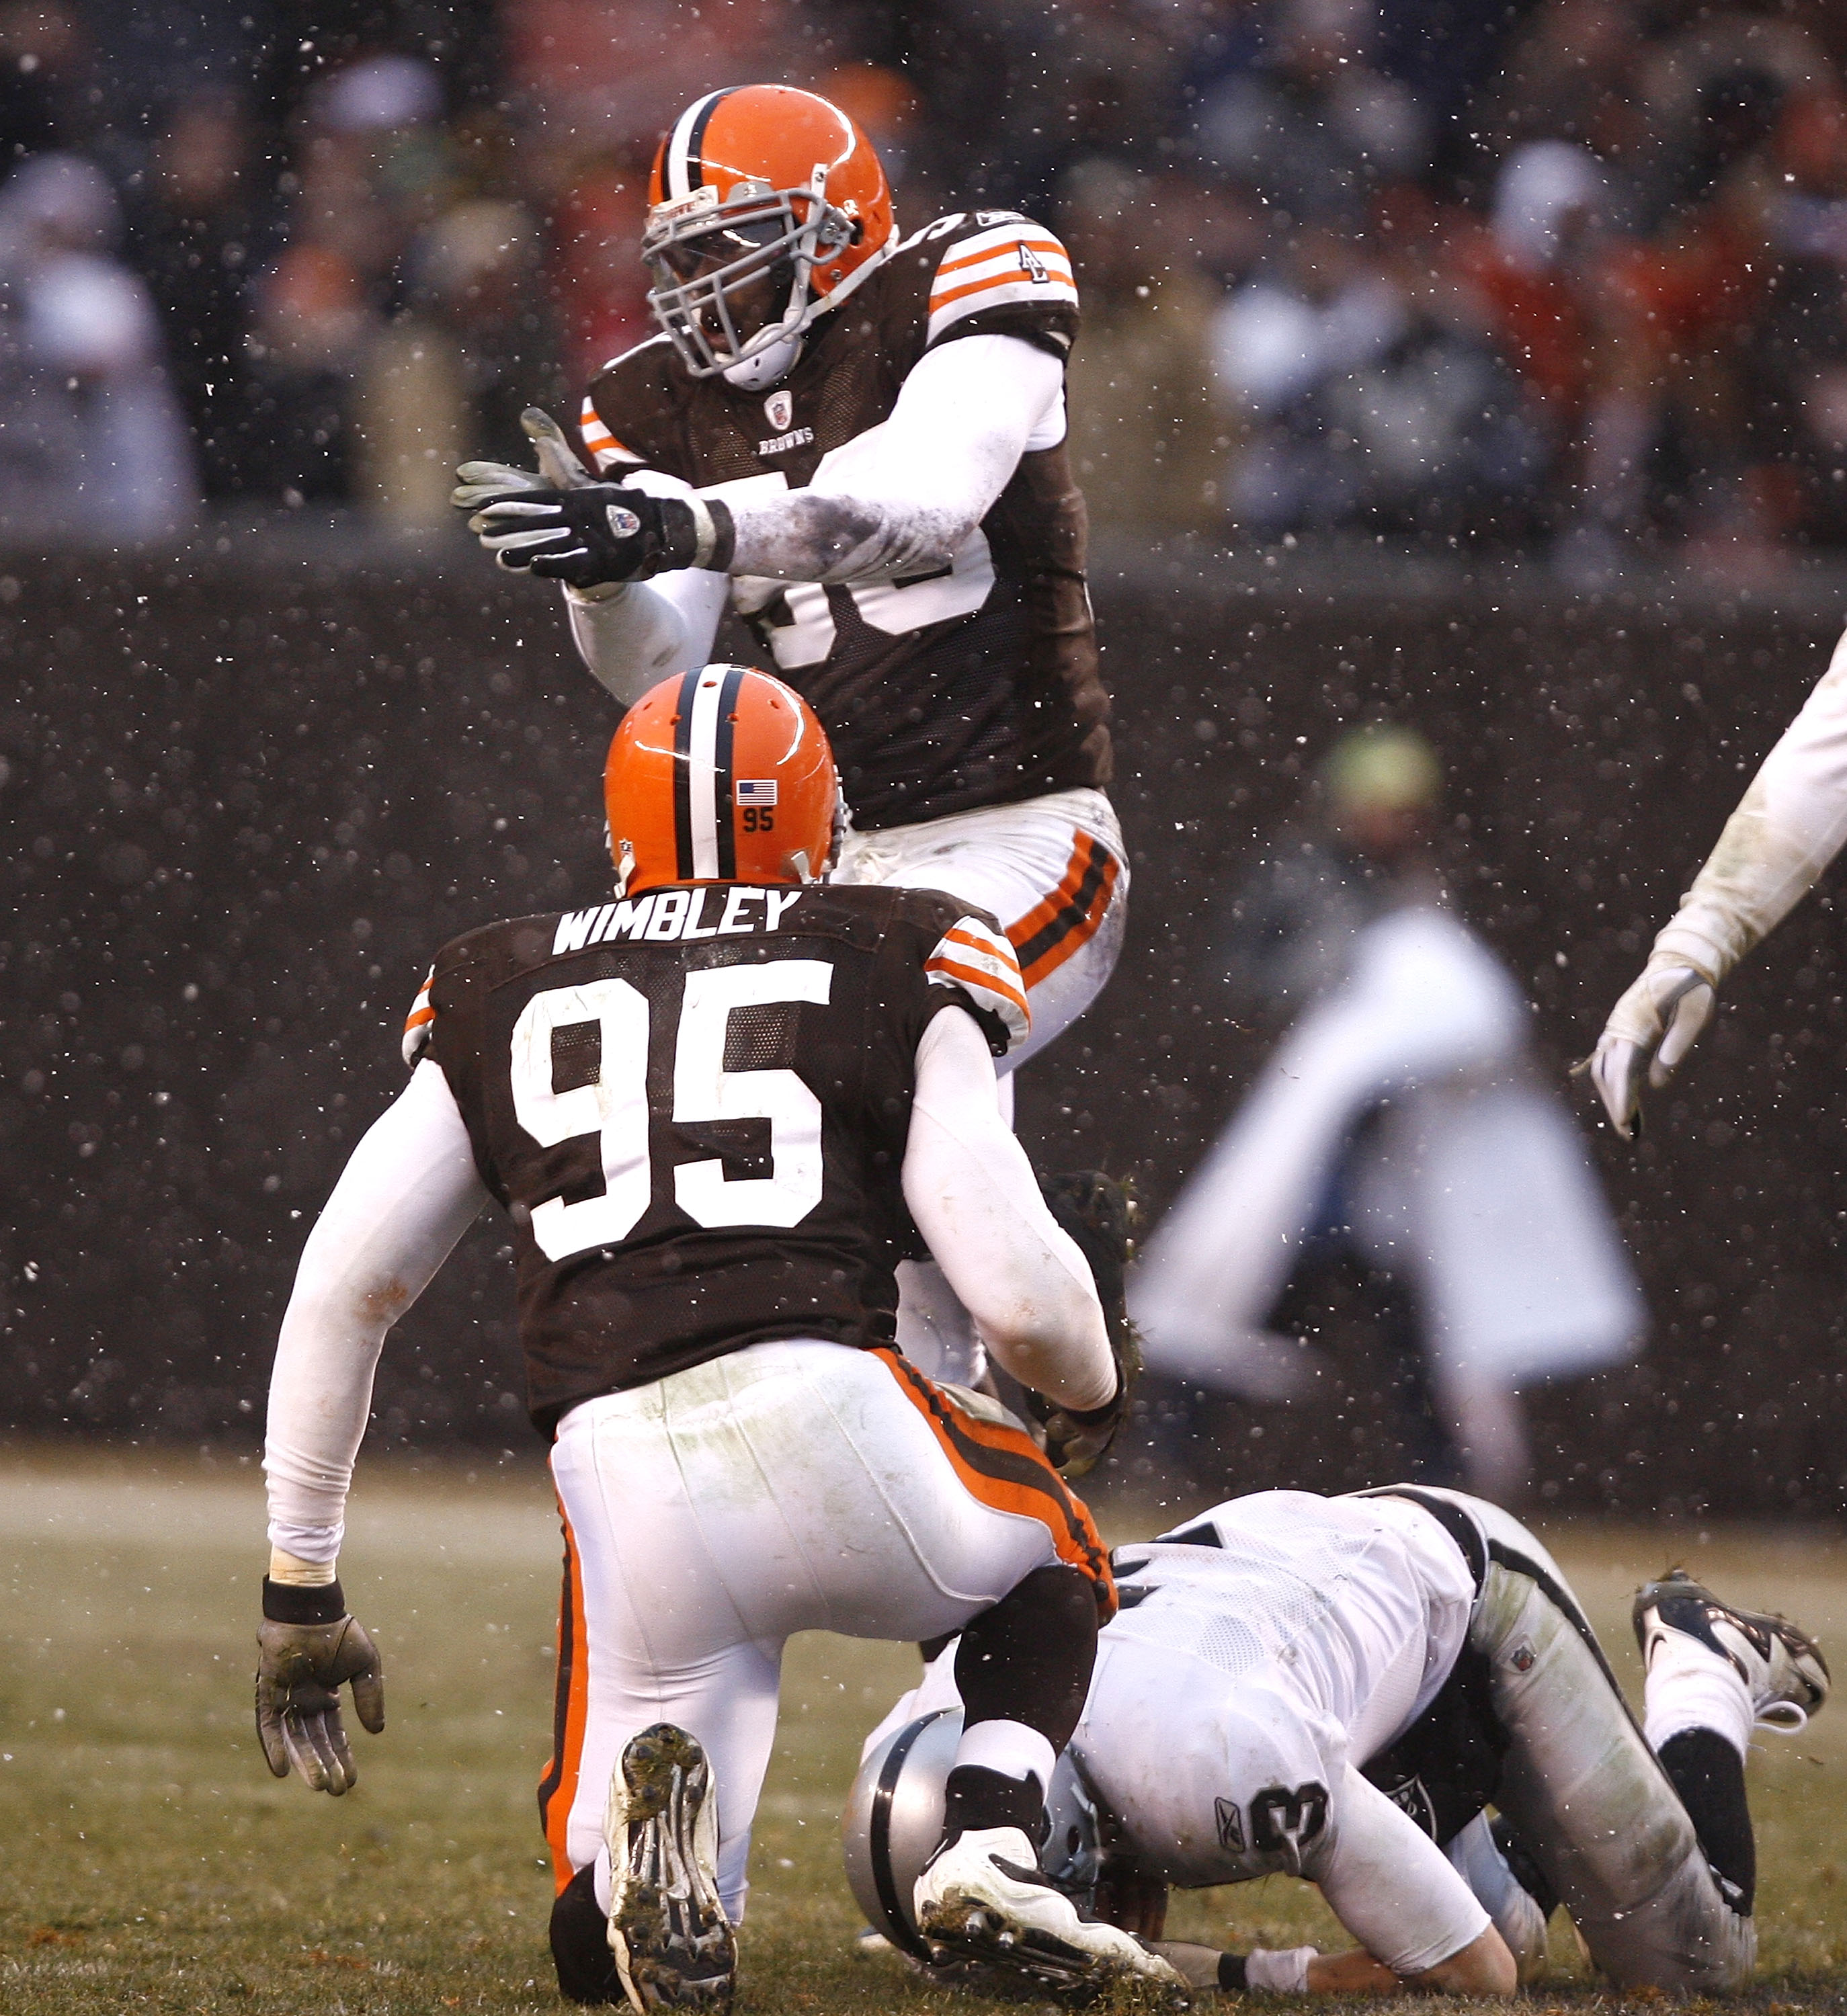 CLEVELAND - DECEMBER 27:  Marcus Benard #58 and Kamerion Wimbley #95 of the Cleveland Browns celebrate after sacking Charlie Frye #3 of the Oakland Raiders at Cleveland Browns Stadium on December 27, 2009 in Cleveland, Ohio.  (Photo by Matt Sullivan/Getty